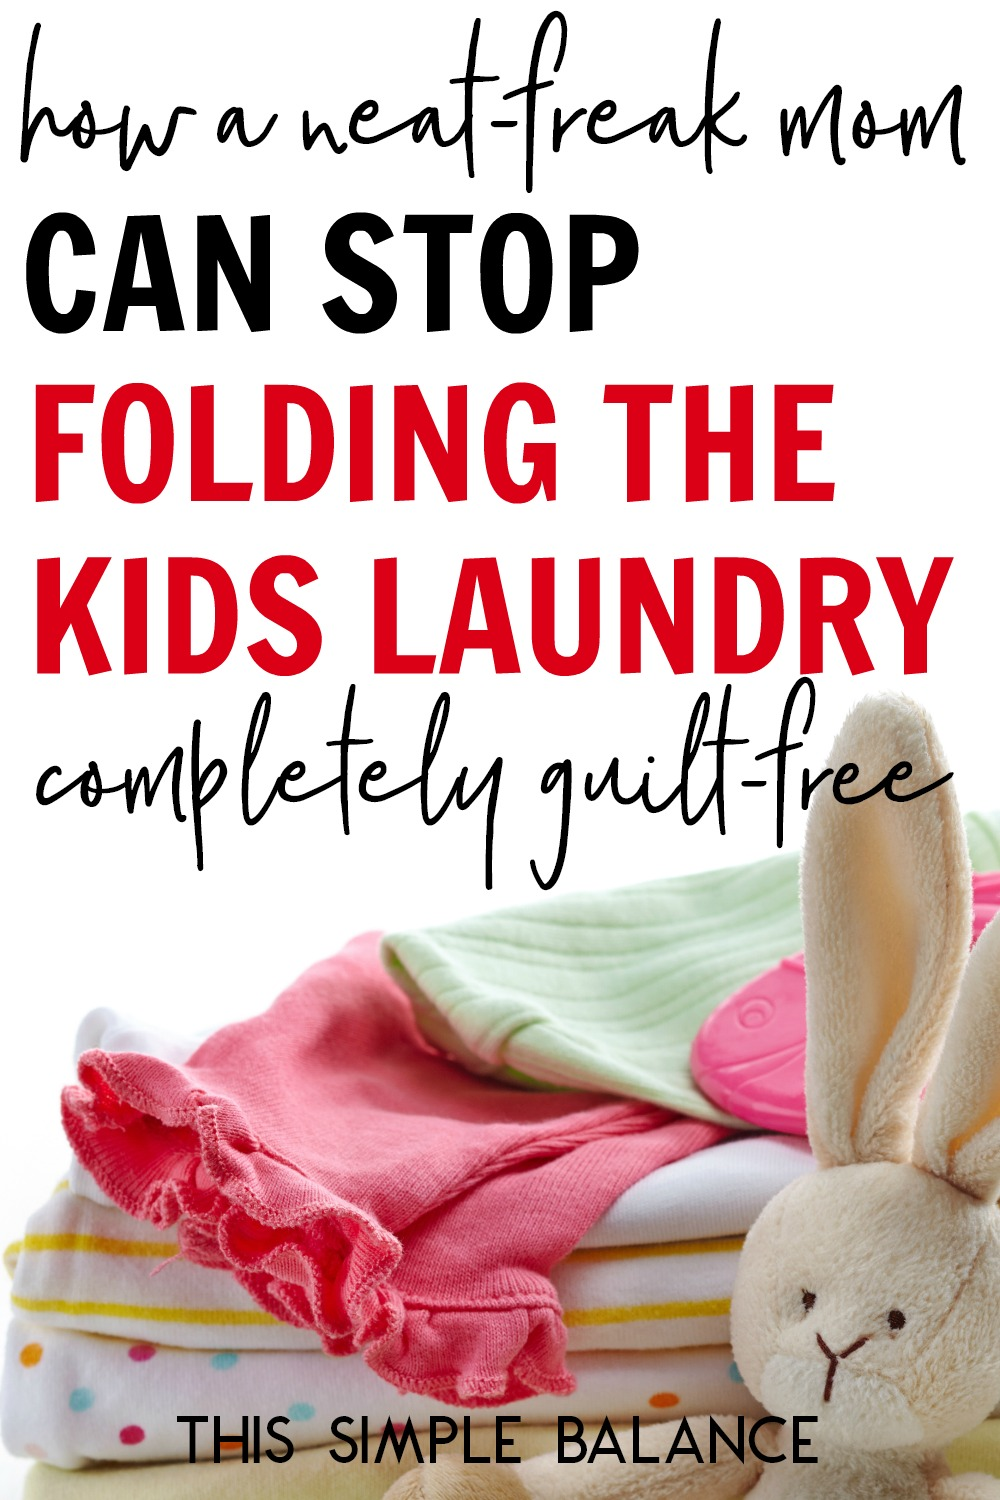 Want to stop folding laundry but feel you its something you just HAVE to do? Get 6 good reasons to stop (from a neat freak, organized mom) and how to do it.